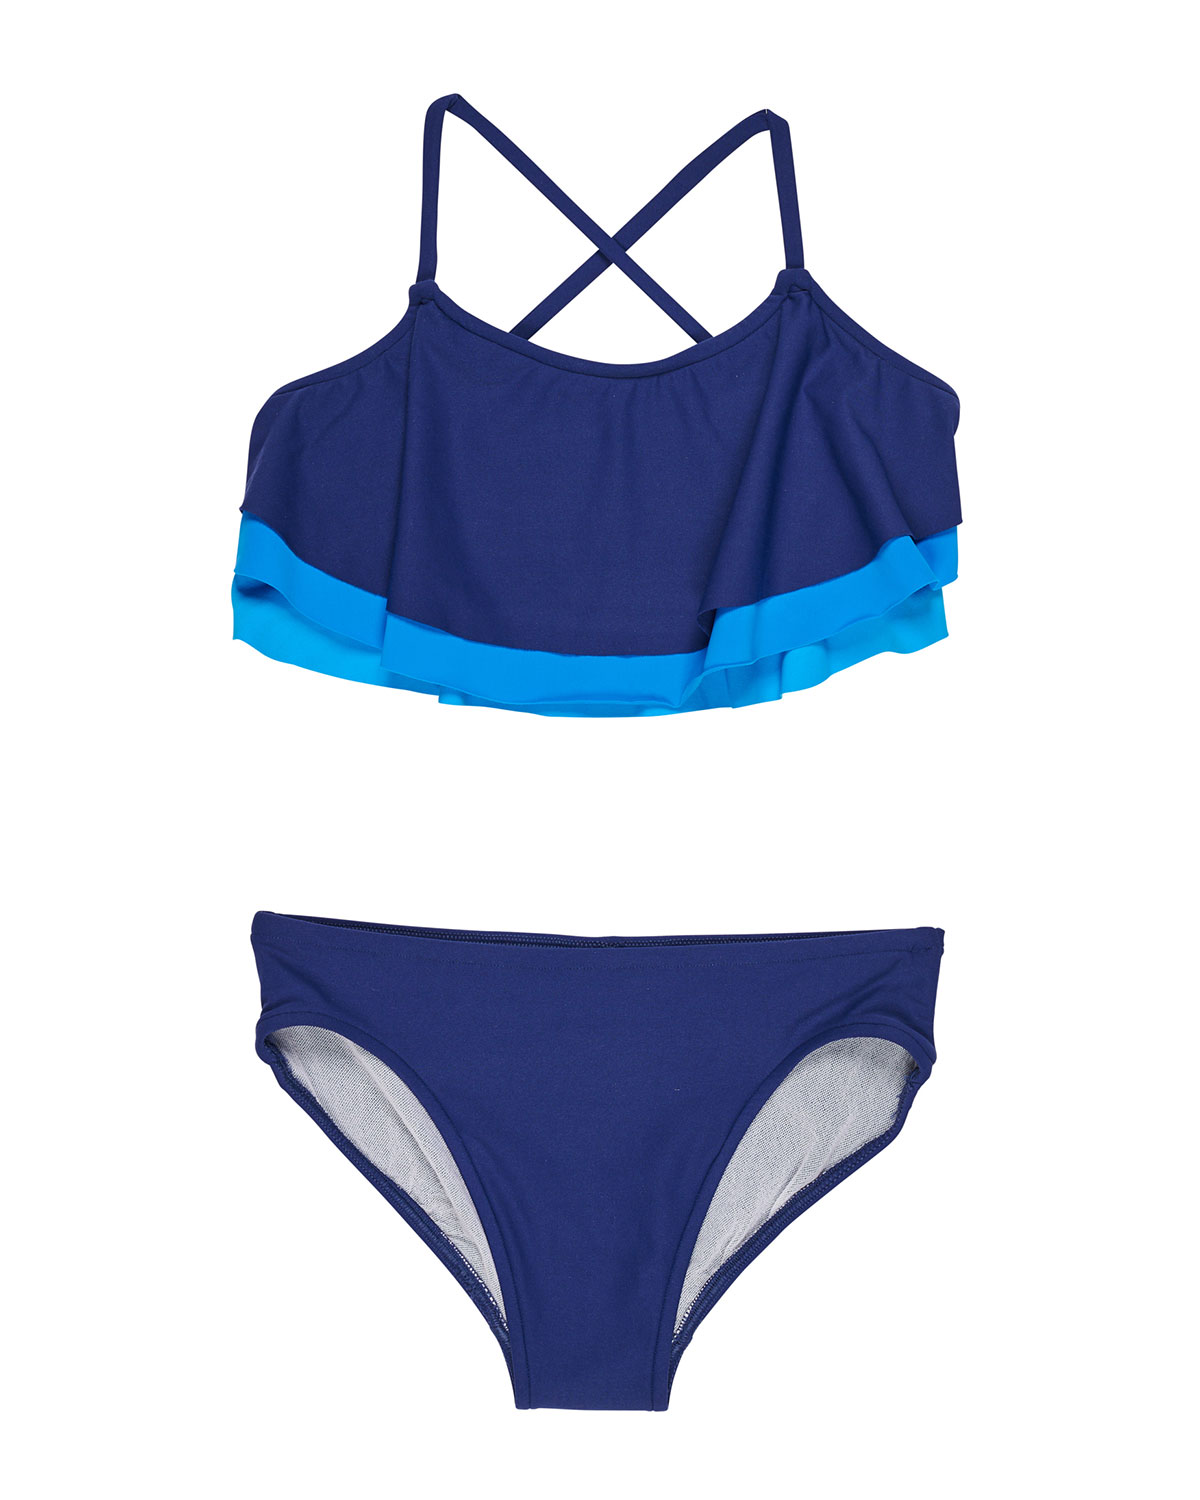 FLORENCE EISEMAN Shades Of Blue Two-Piece Swimsuit, Size 7-14